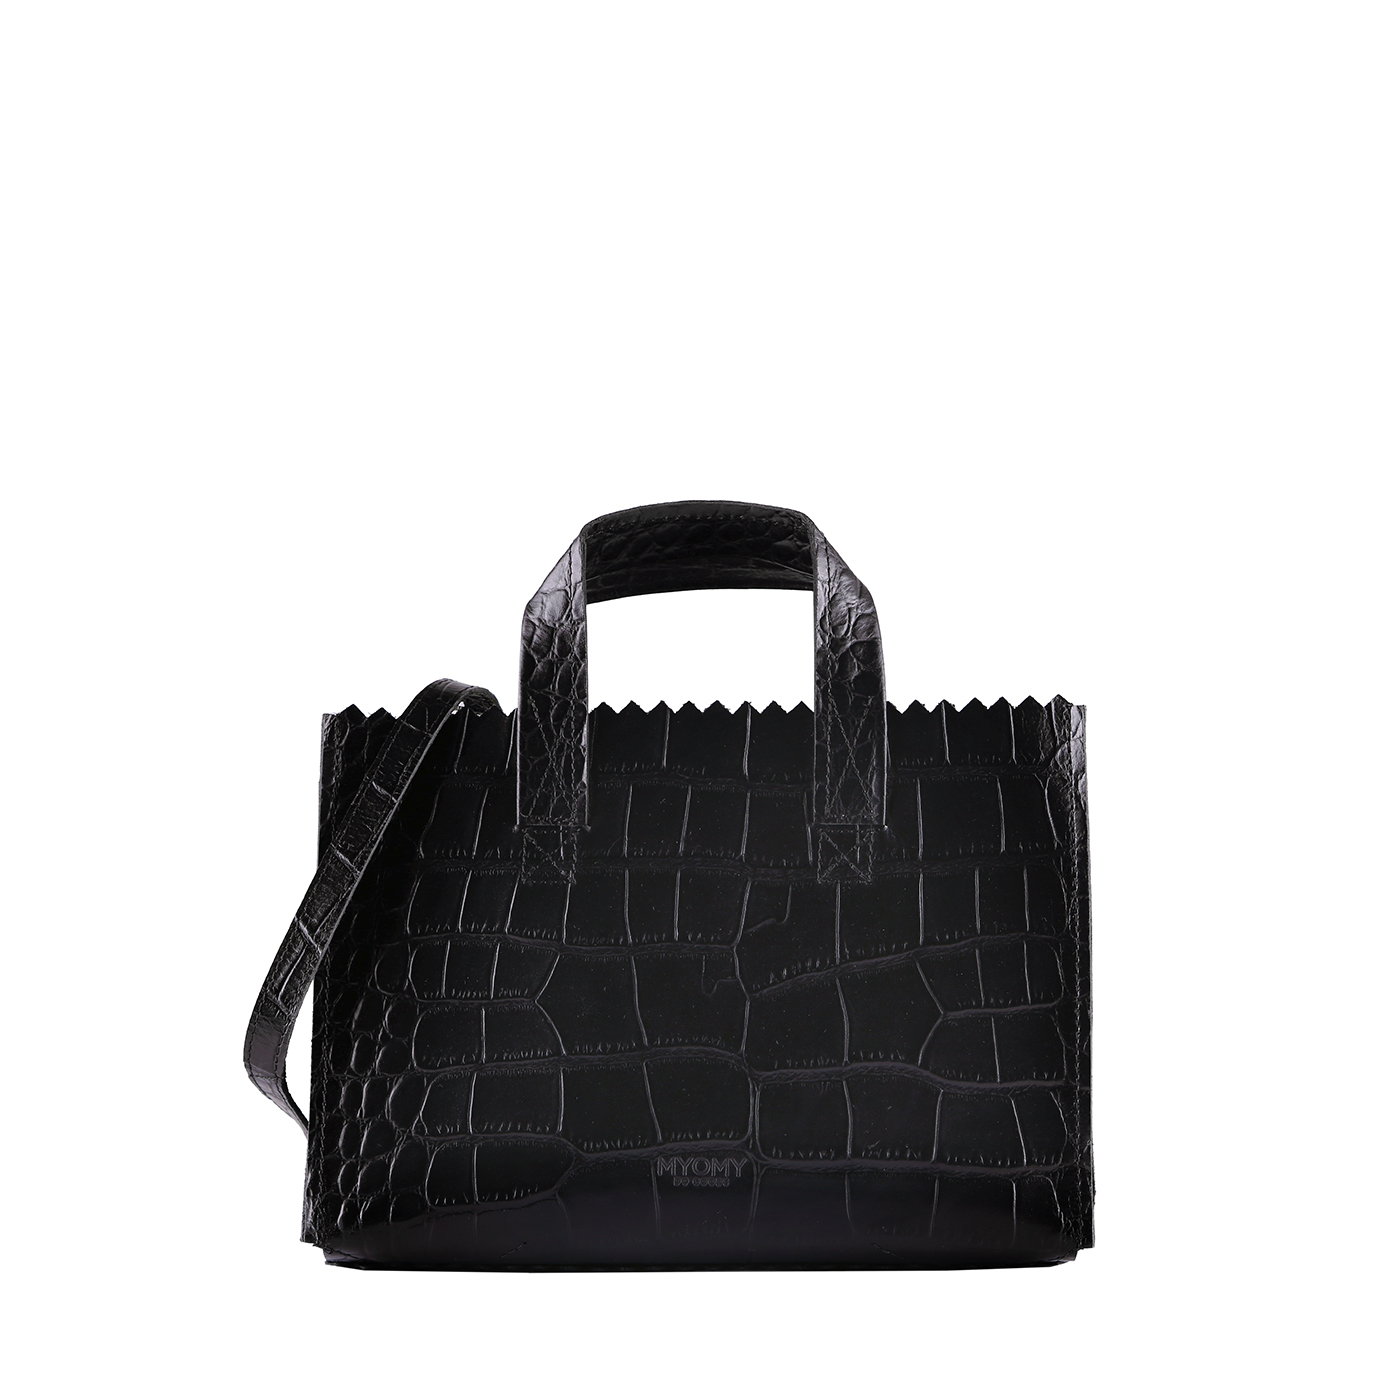 MY PAPER BAG Mini handbag cross-body  - croco black